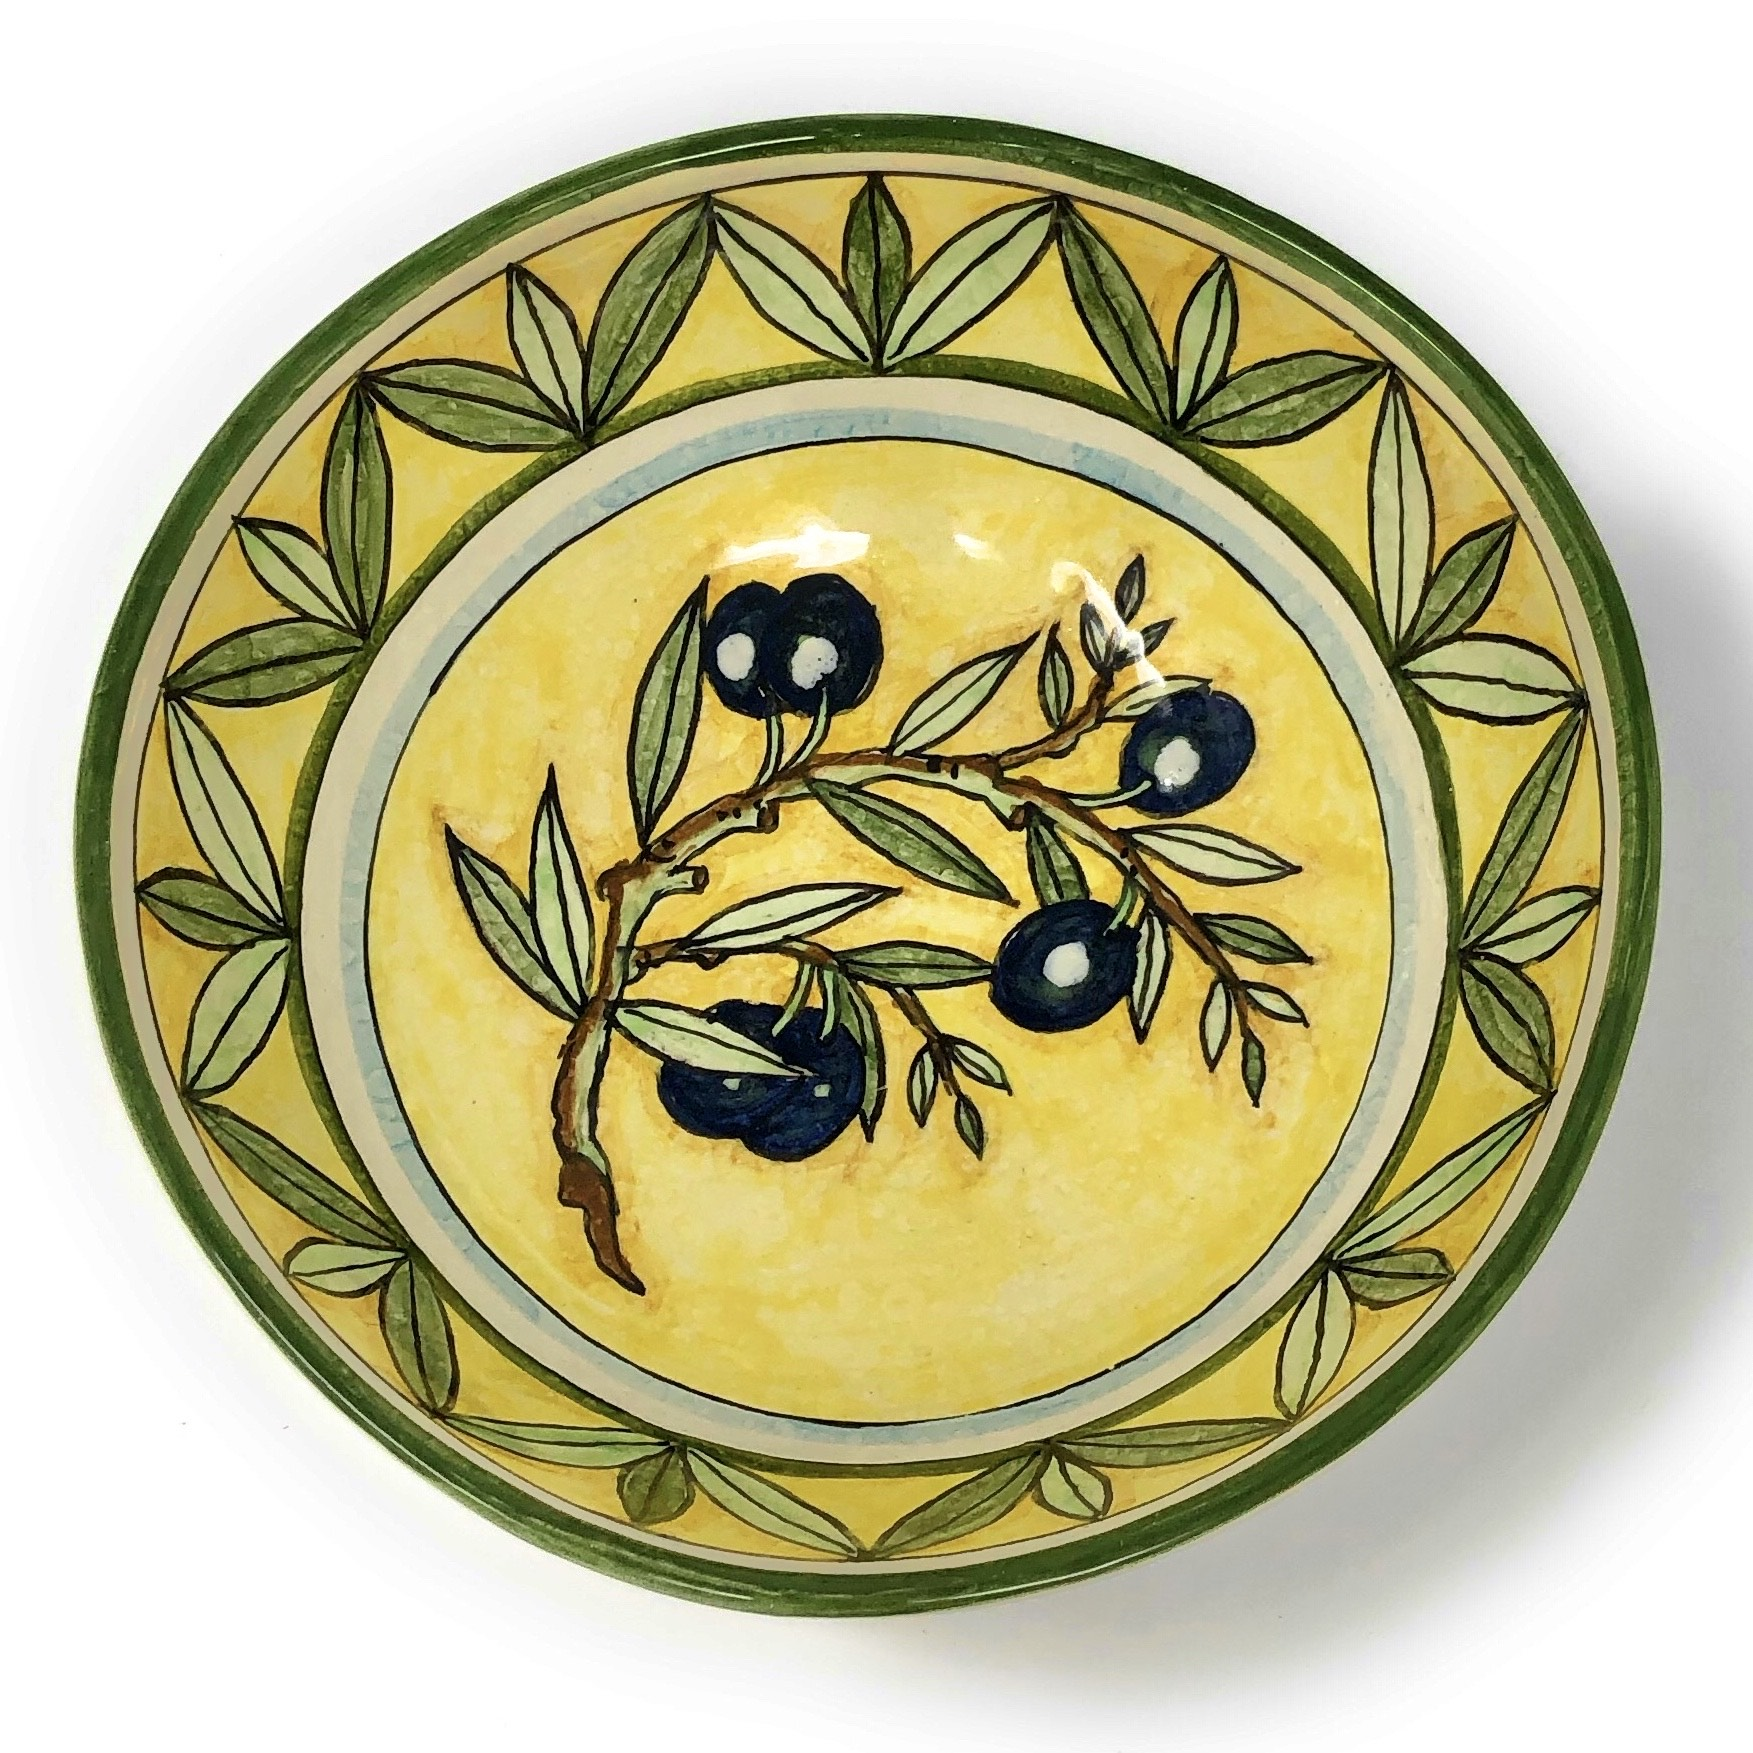 Bowl Olives yellow background